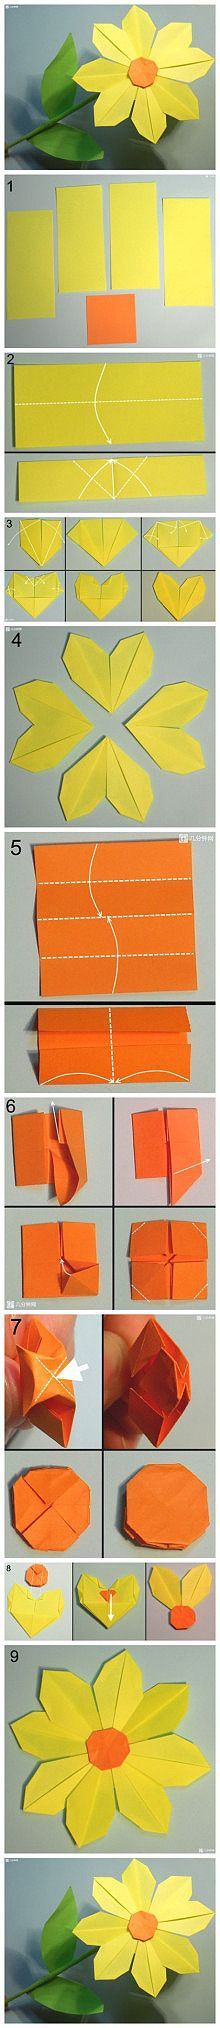 How to make pretty paper craft origami yellow flower step by step by iris-flower: flowers iris Origami And Kirigami, Paper Crafts Origami, Diy Origami, Origami Tutorial, Diy Paper, Oragami, Diy Tutorial, Flower Crafts, Diy Flowers